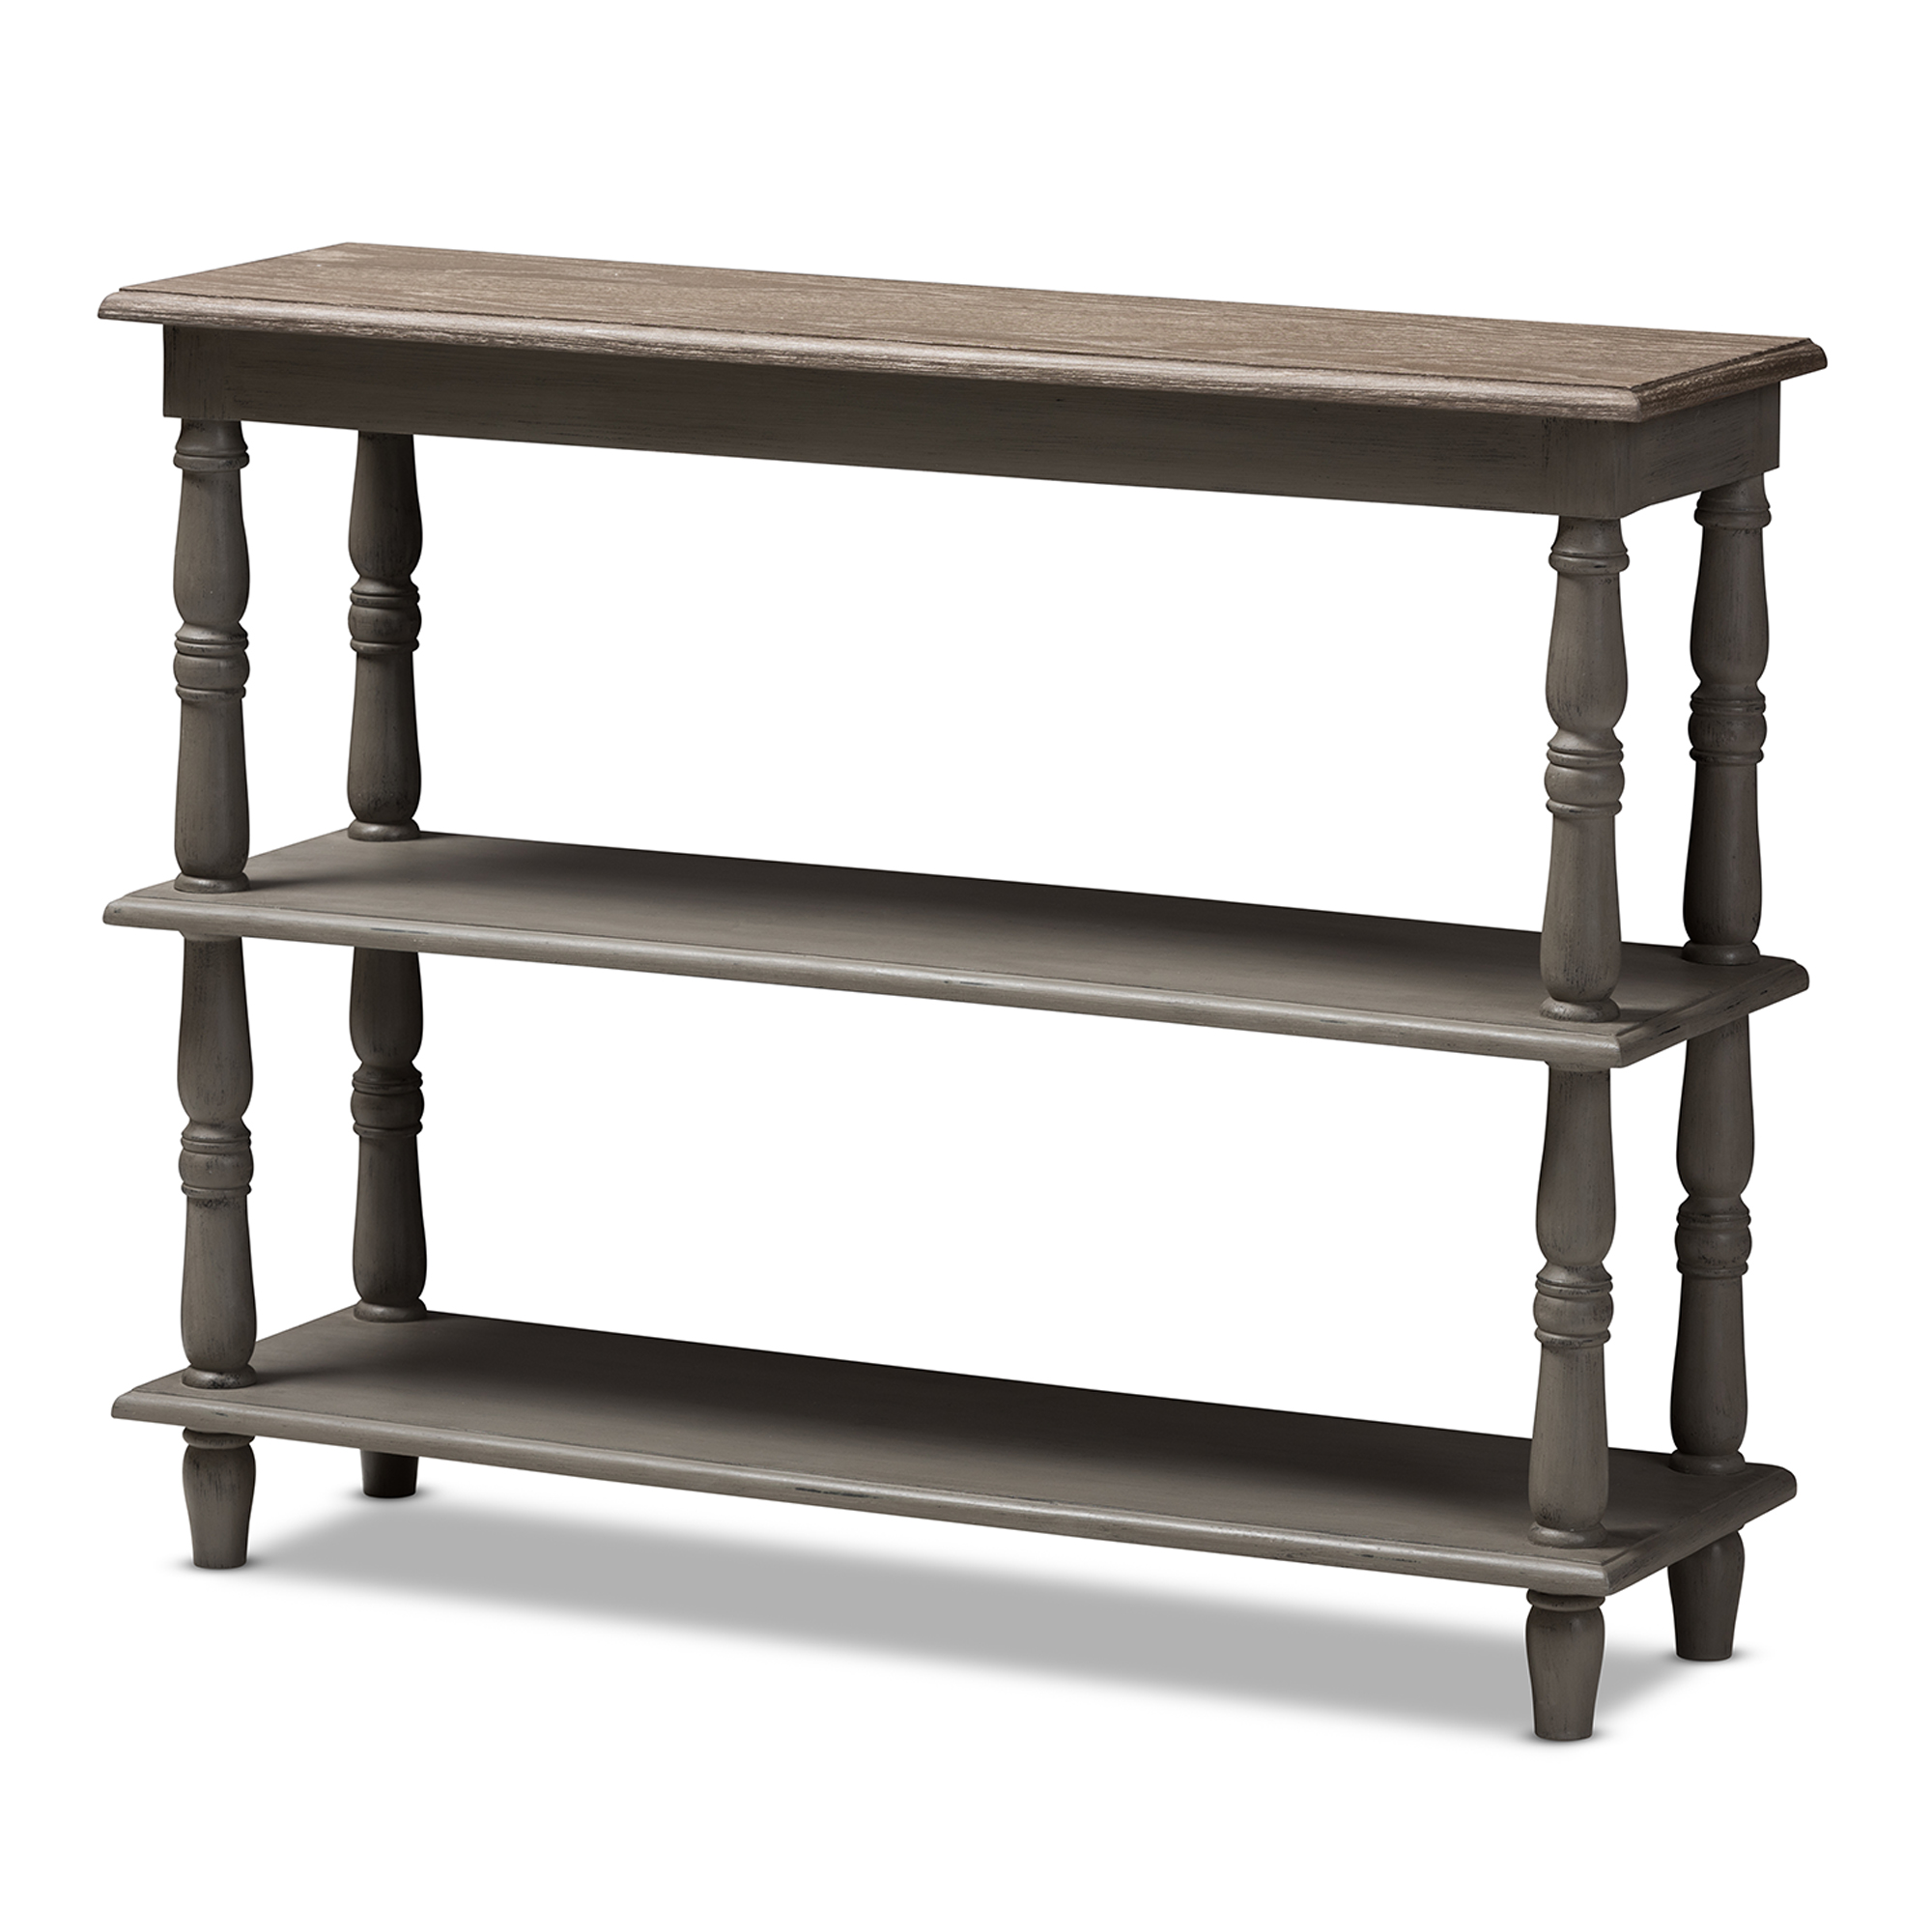 Baxton Studio Nellie Country Cottage Farmhouse Weathered Brown - Country cottage console table